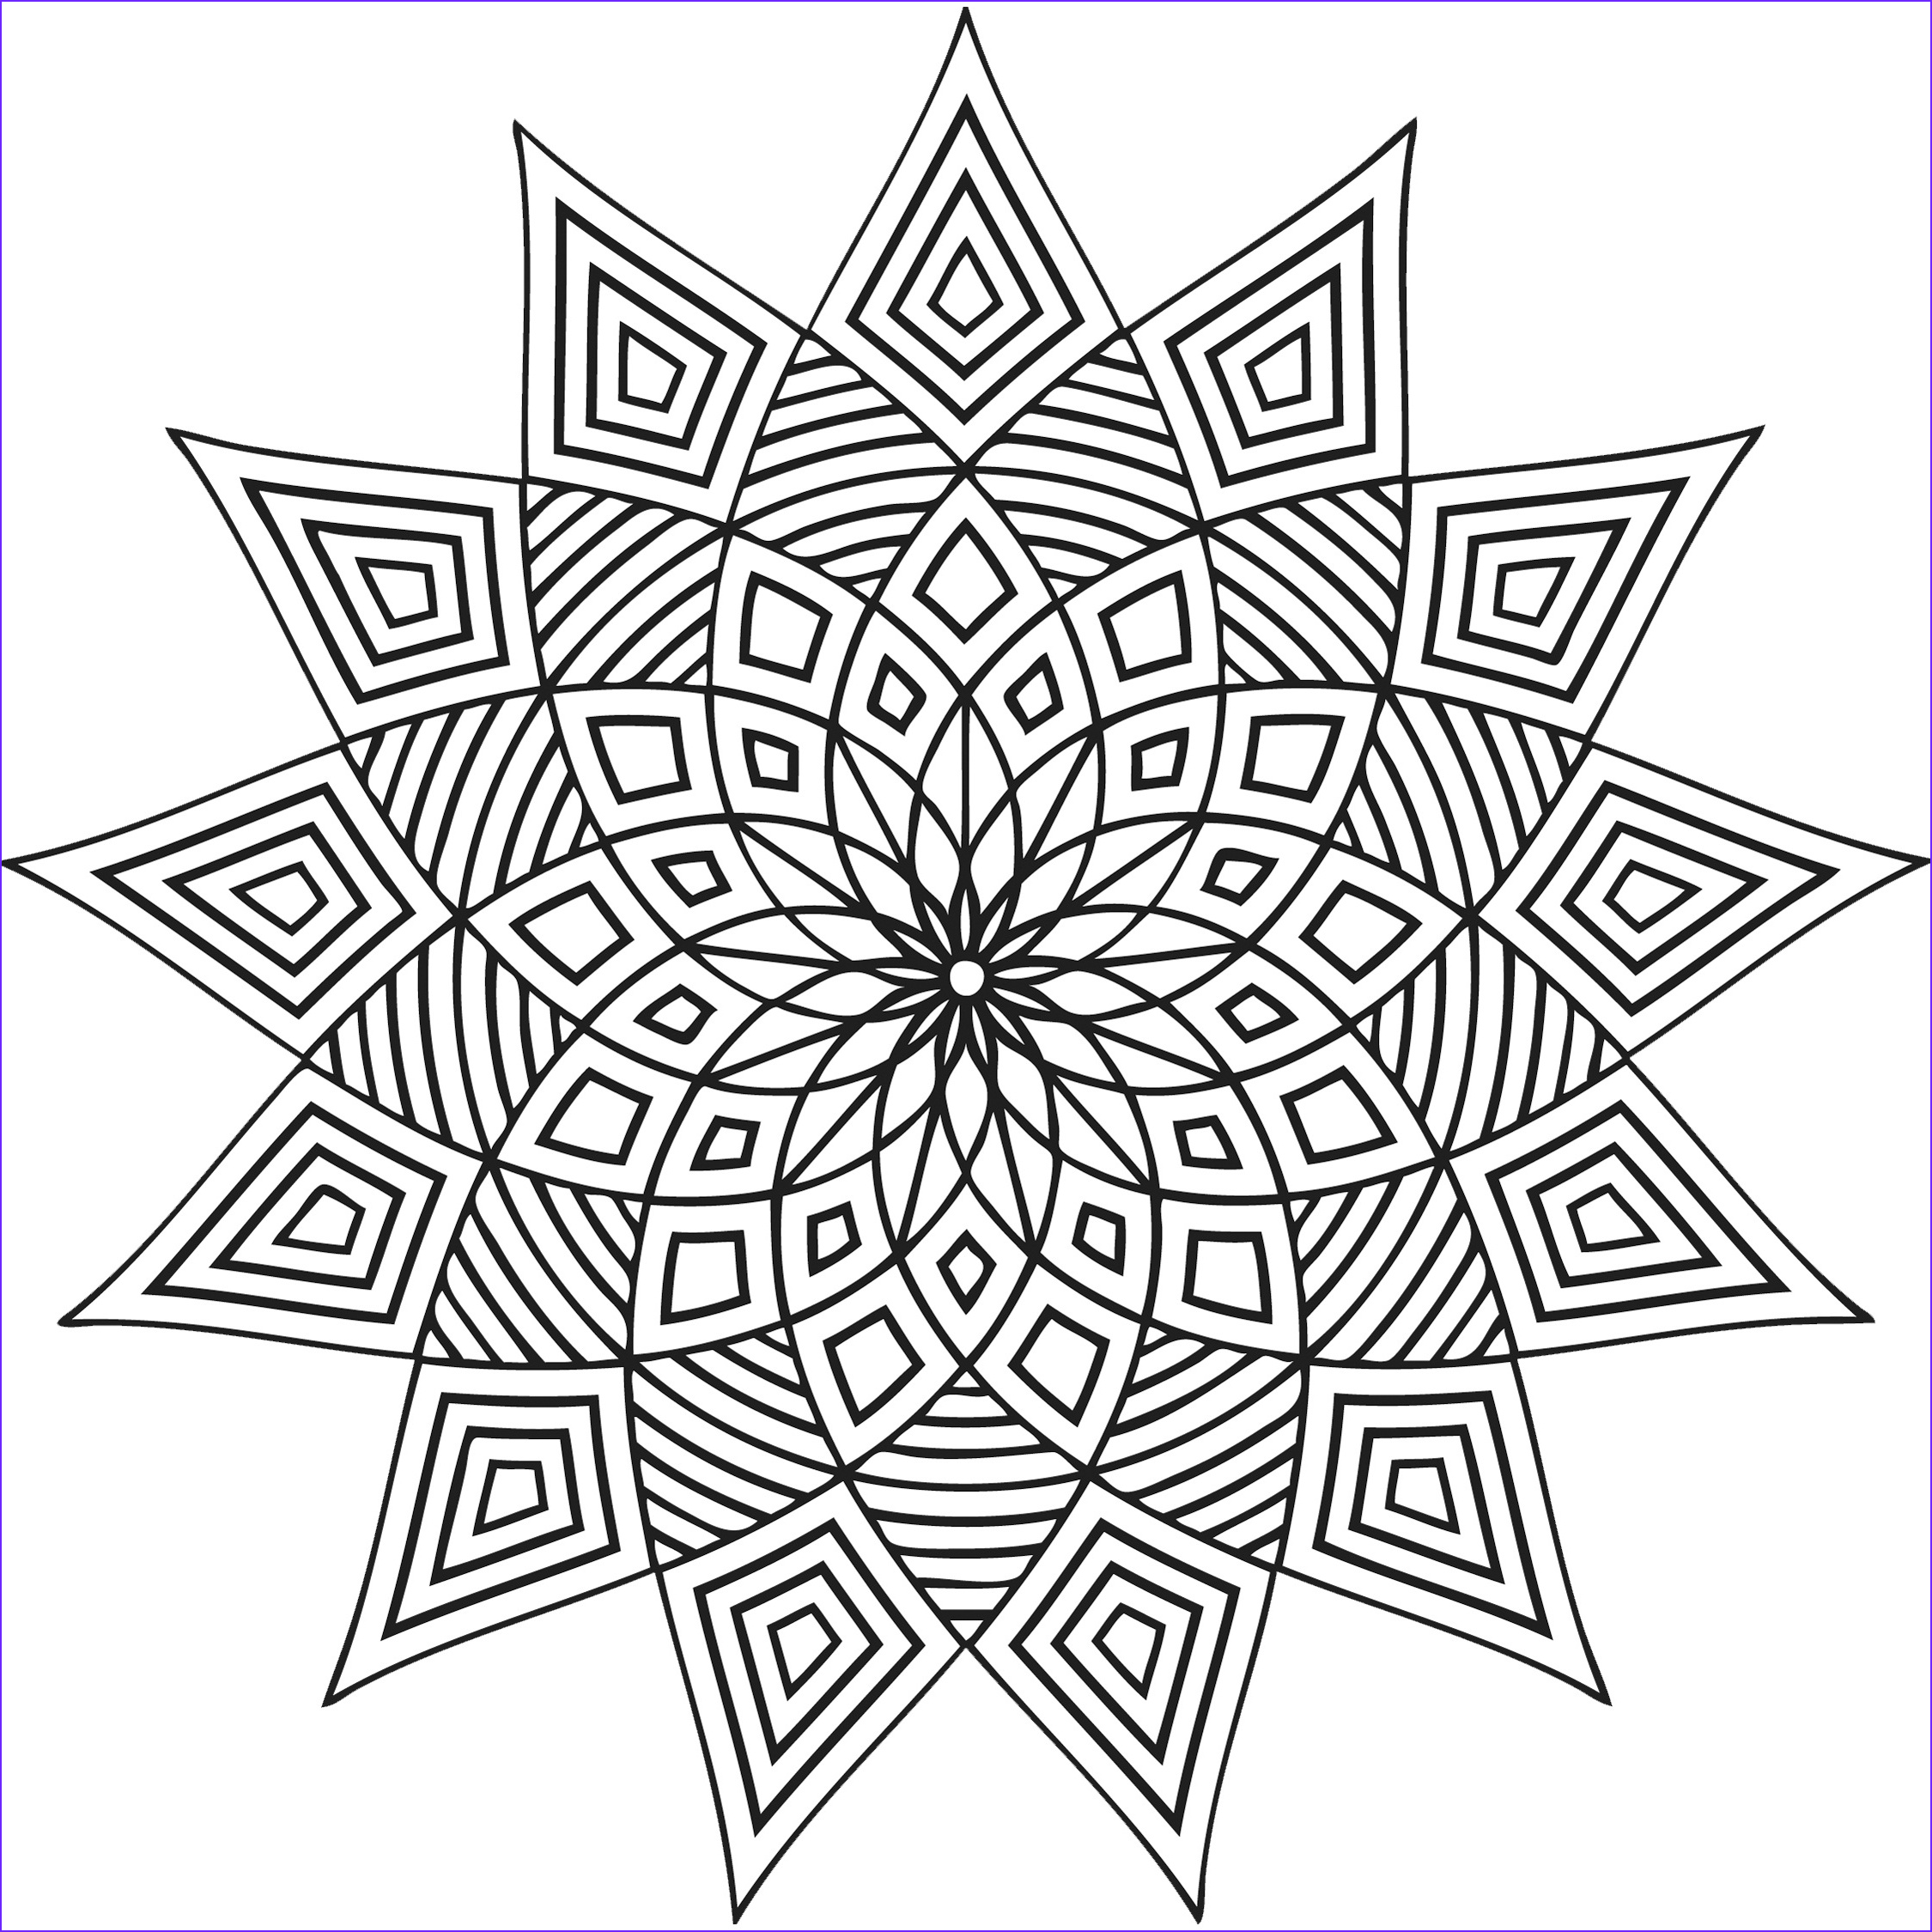 Coloring Design Pages Best Of Image Free Printable Geometric Coloring Pages for Kids